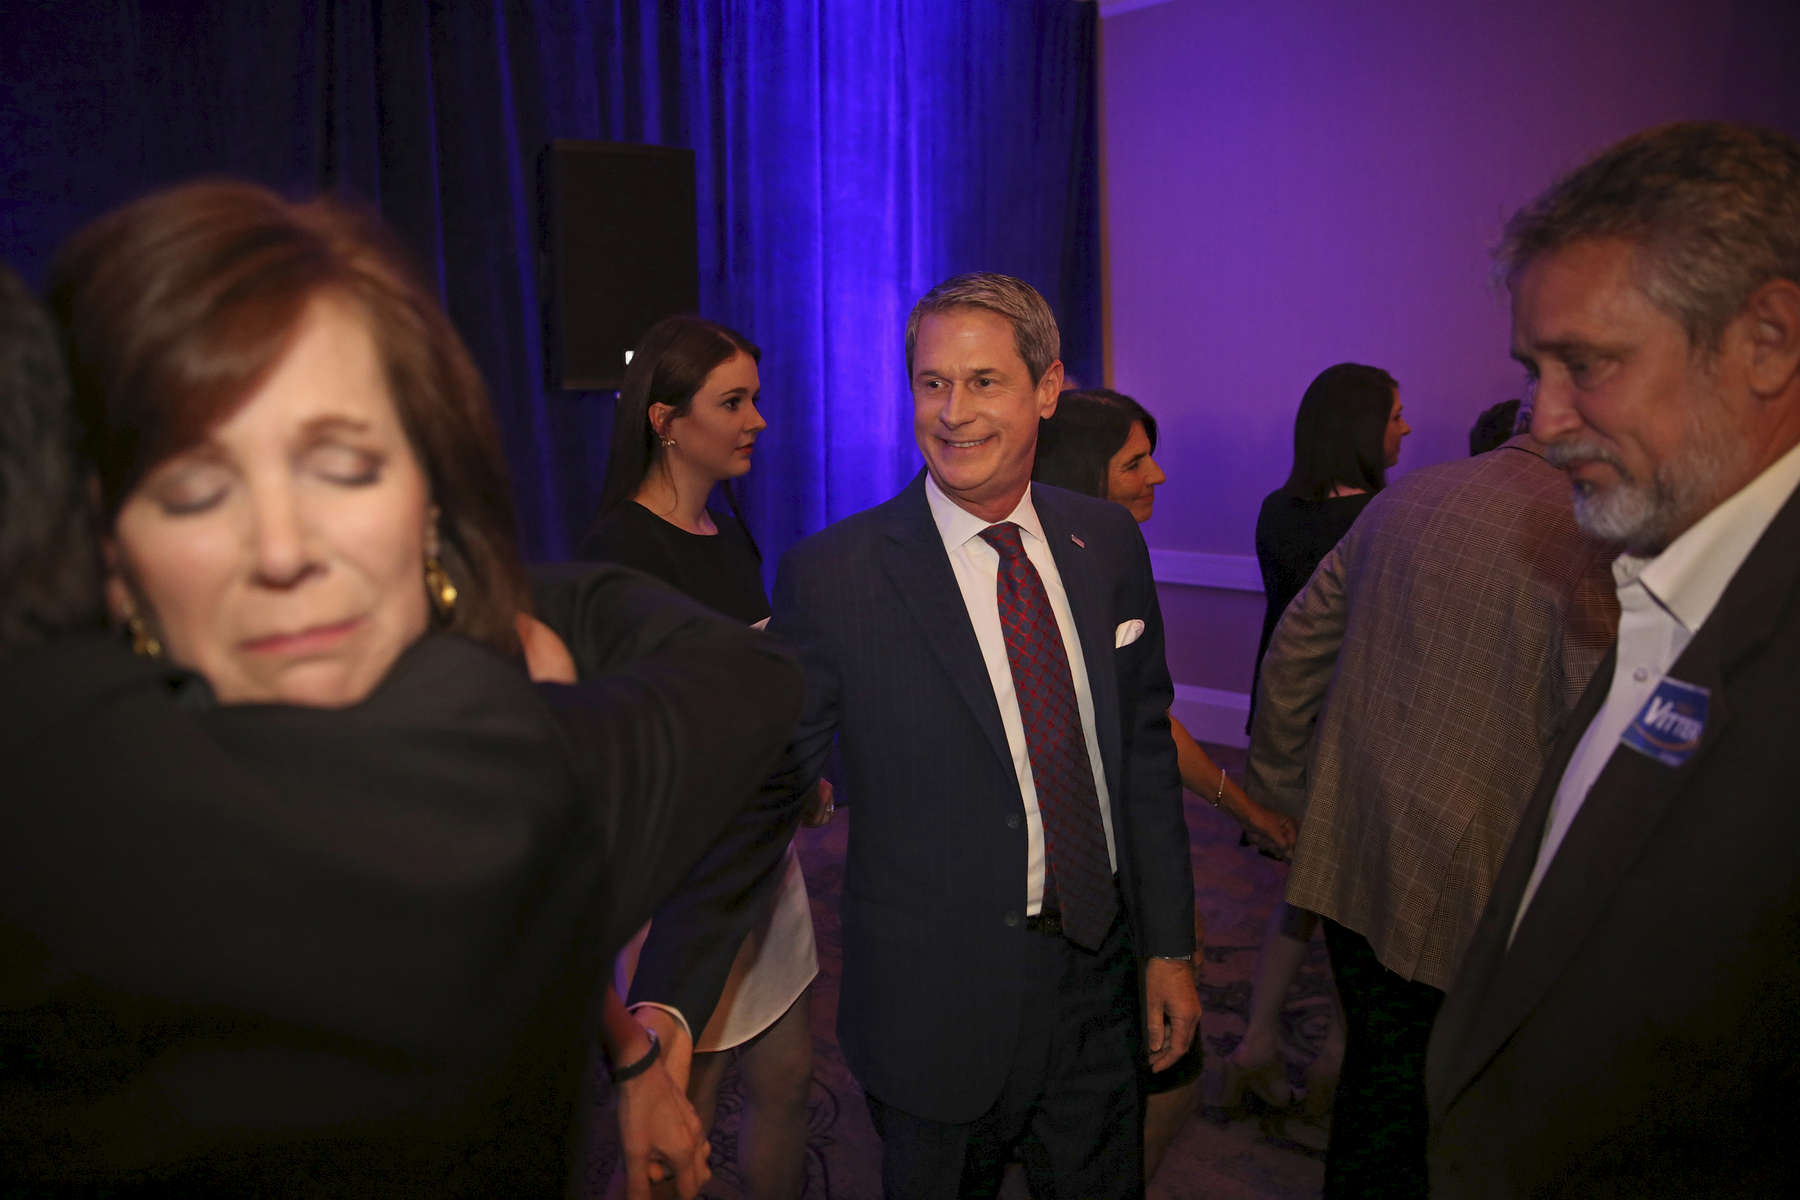 KENNER, LOUISIANA. Louisiana gubernatorial candidate, Sen. David Vitter, R-La., and his wife Wendy are comforted by their supporters after announcing his defeat at his election night watch party in Kenner, La., Saturday, Nov. 21, 2015. (AP Photo/Max Becherer )